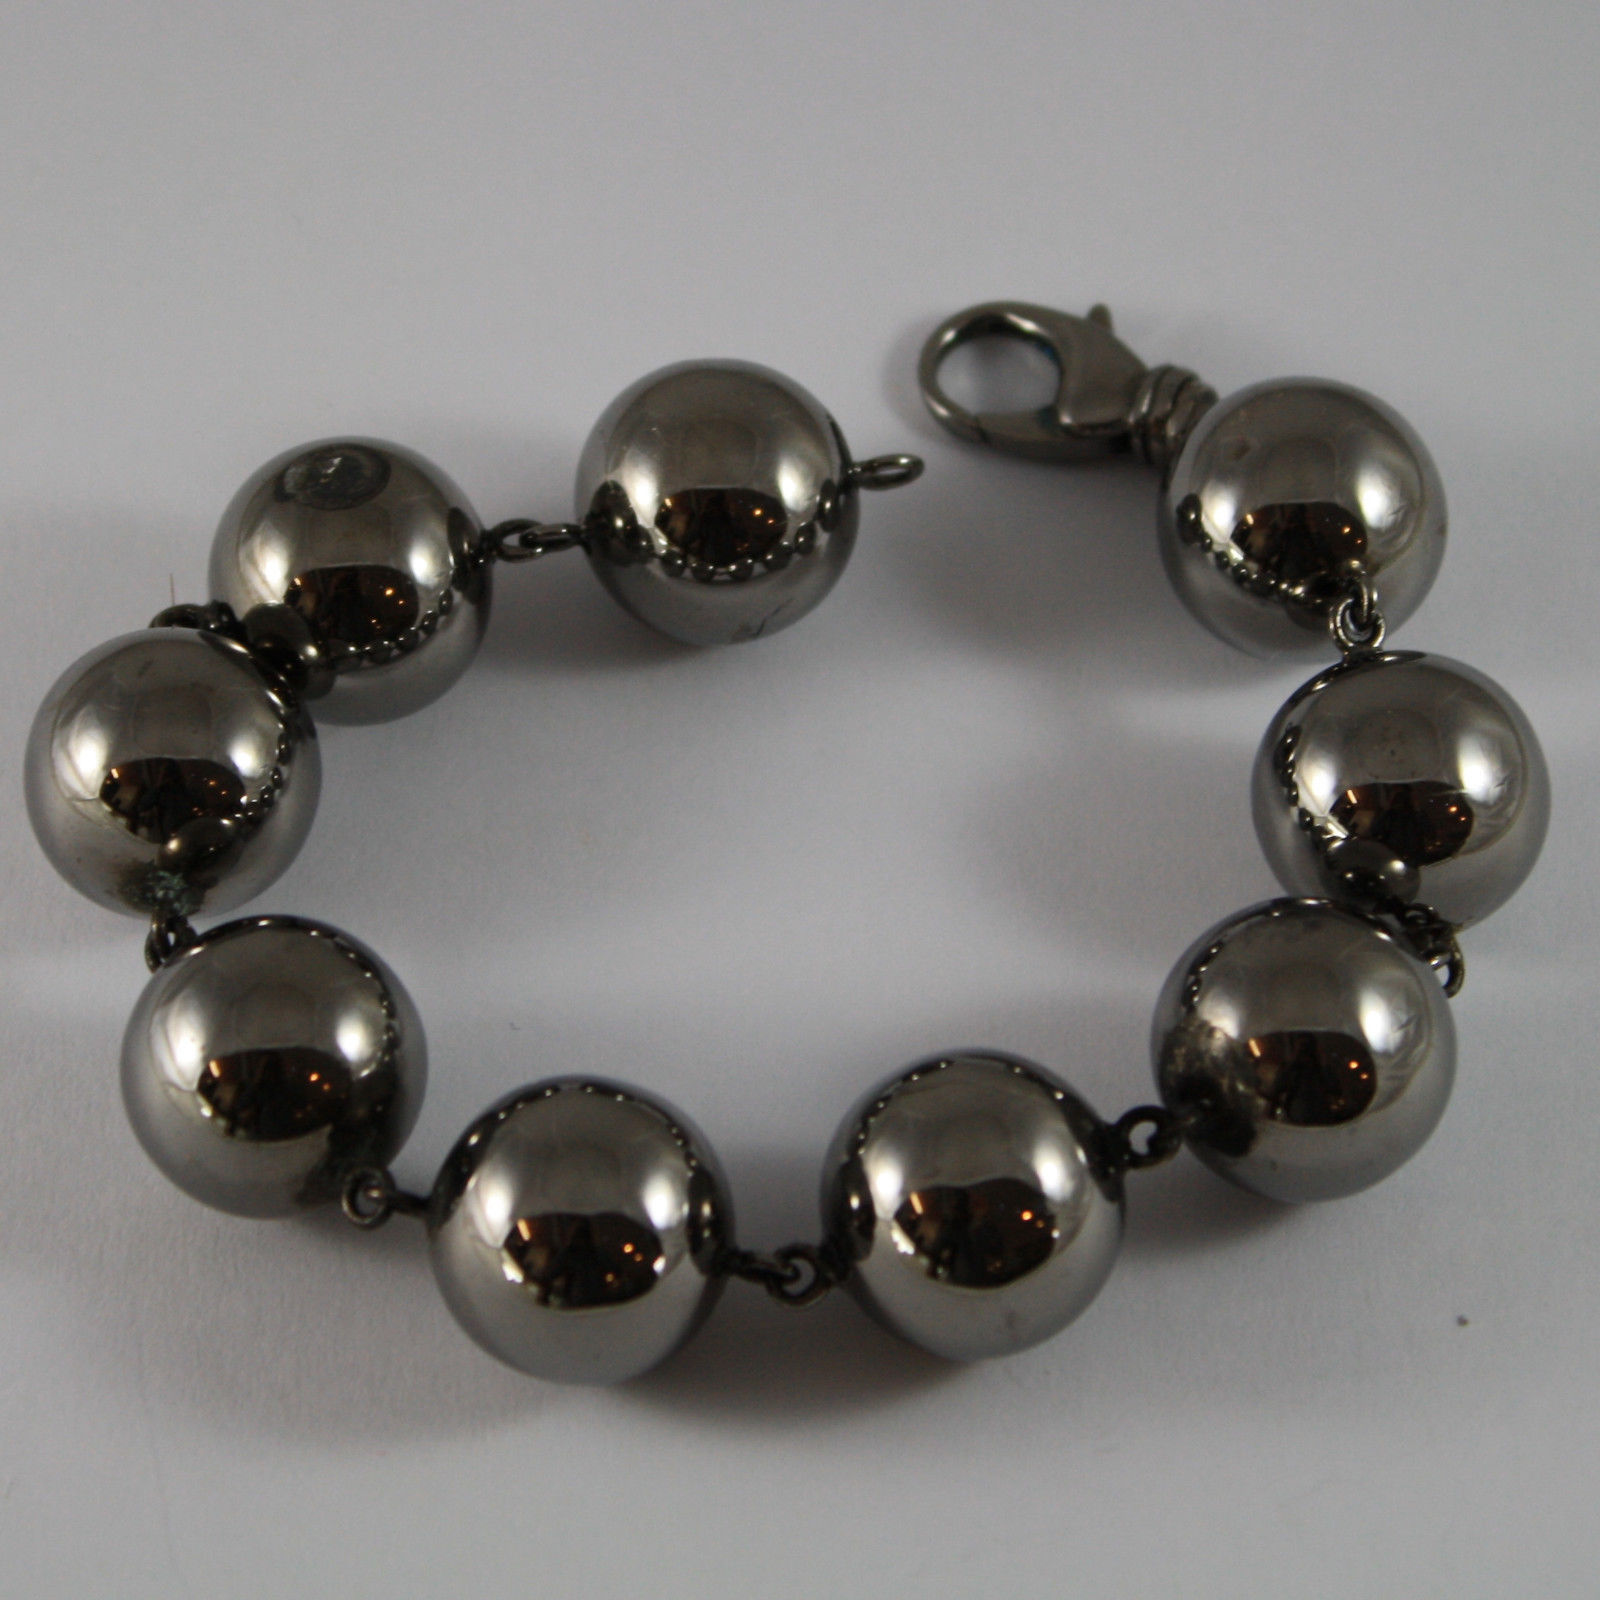 .925 RHODIUM SILVER BURNISHED BRACELET WITH BIG SPHERES